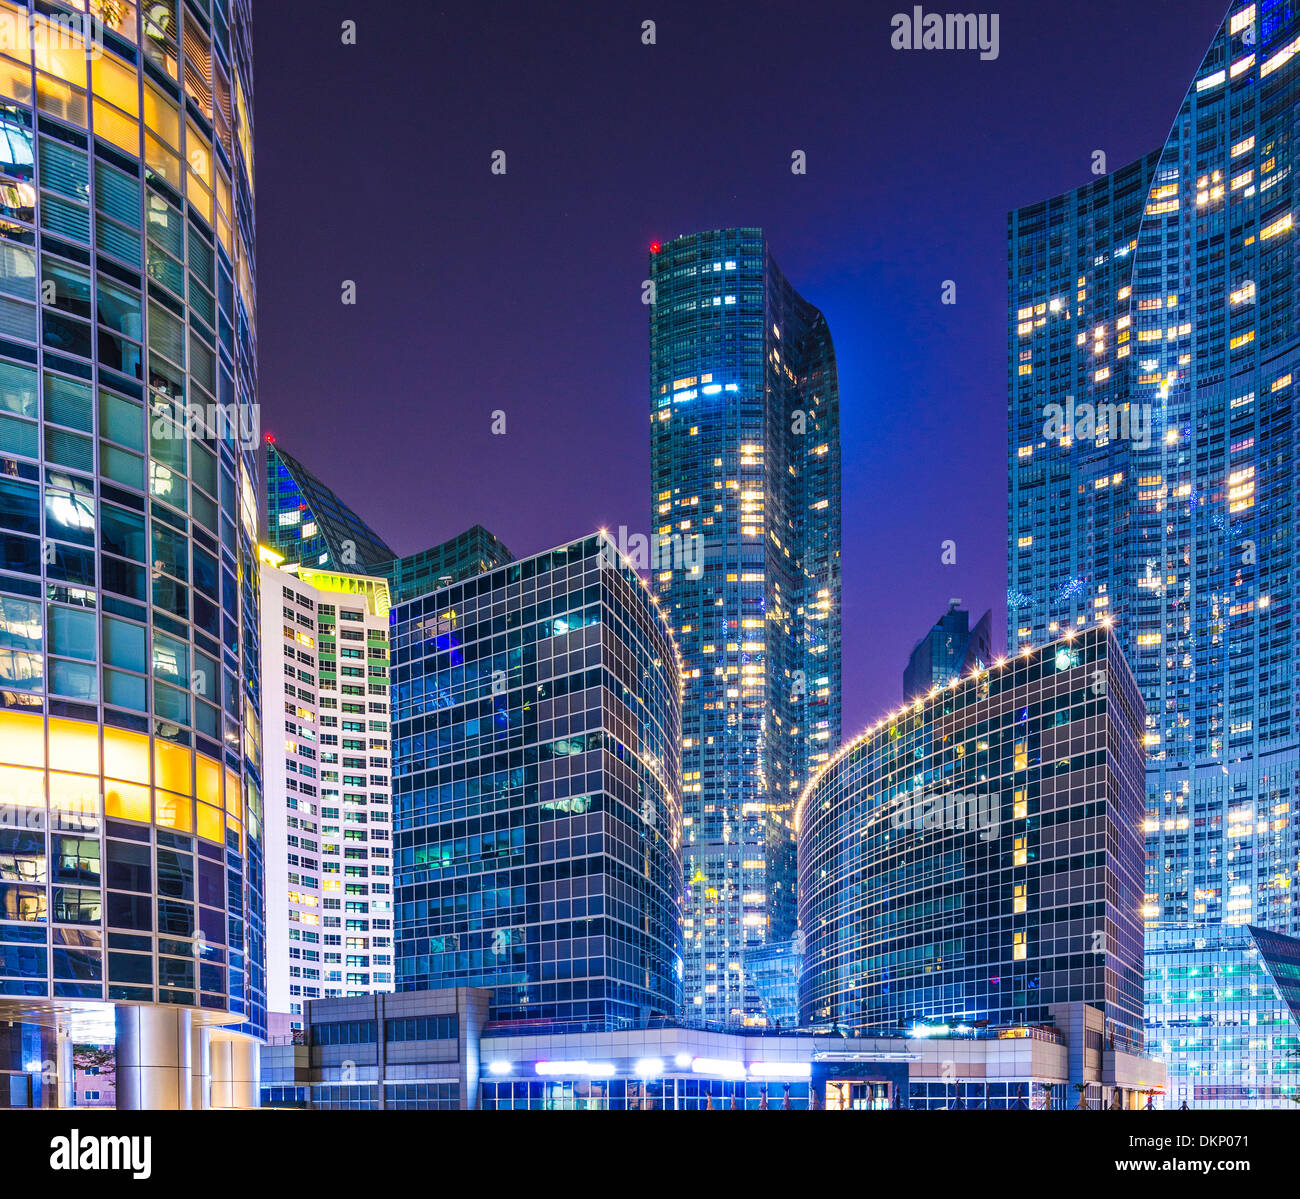 Pusan Stock Photos & Pusan Stock Images